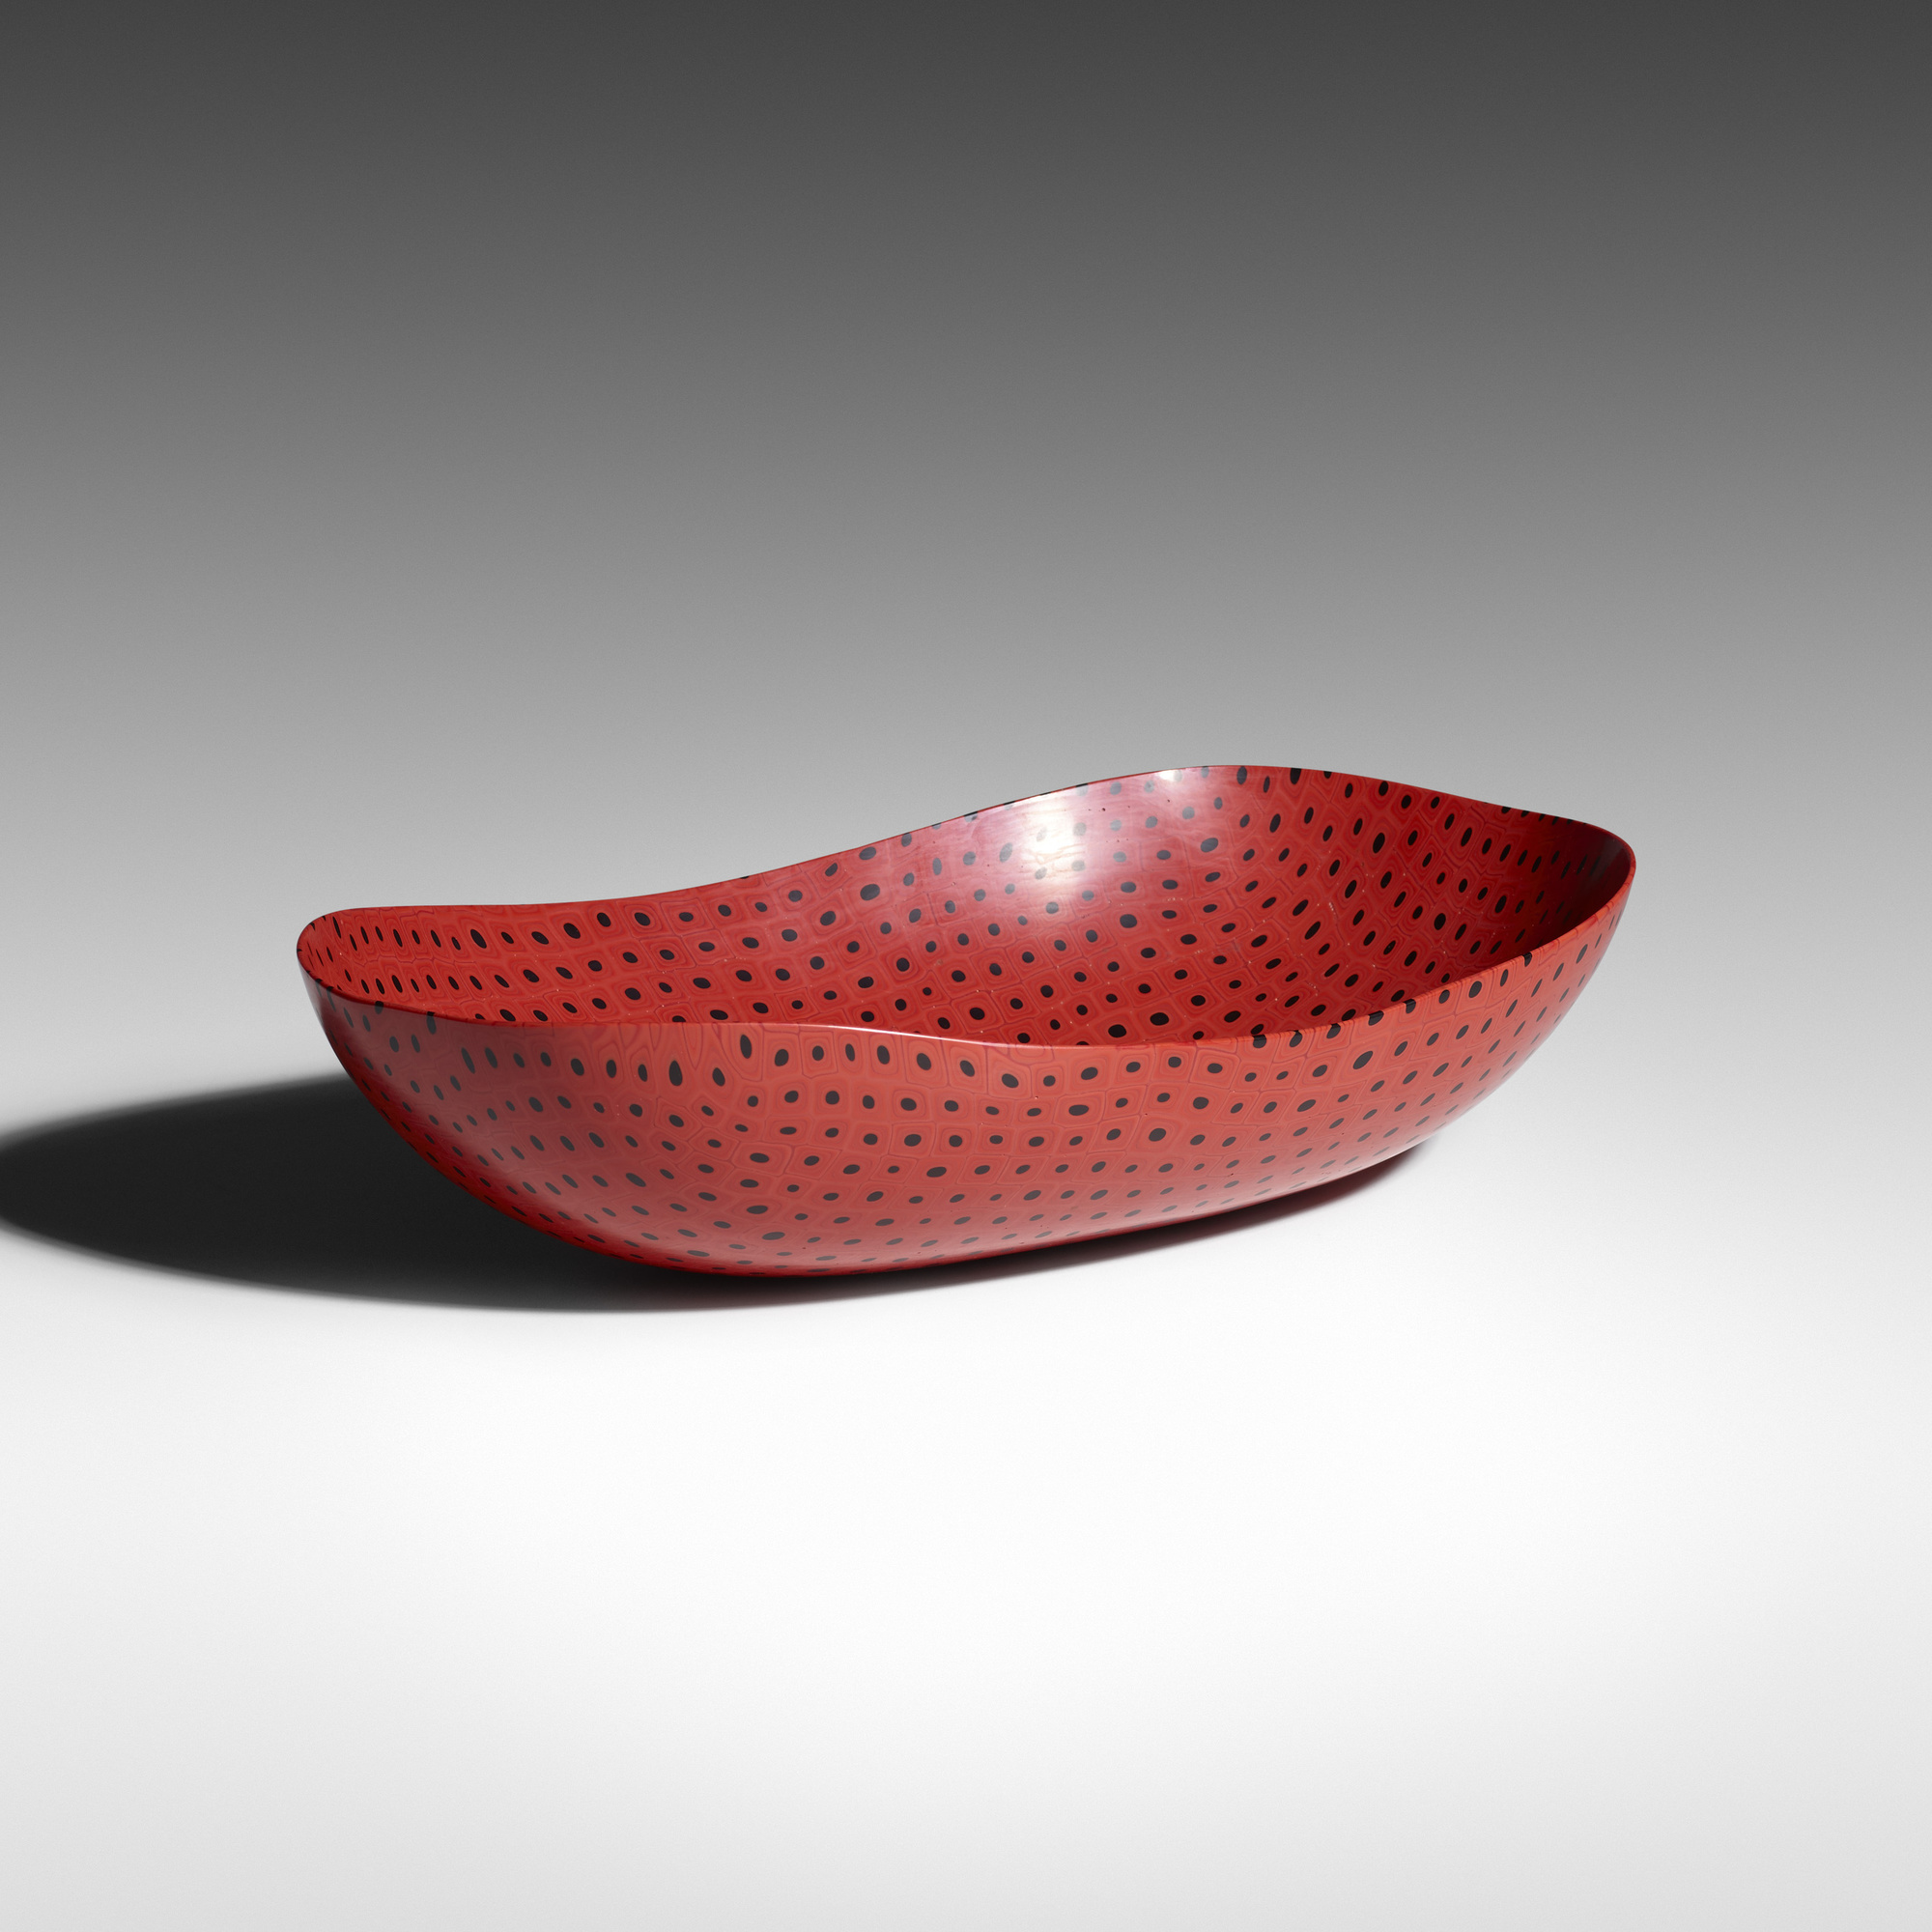 132: Tobia Scarpa after Carlo Scarpa / Murrine Opache bowl (1 of 4)